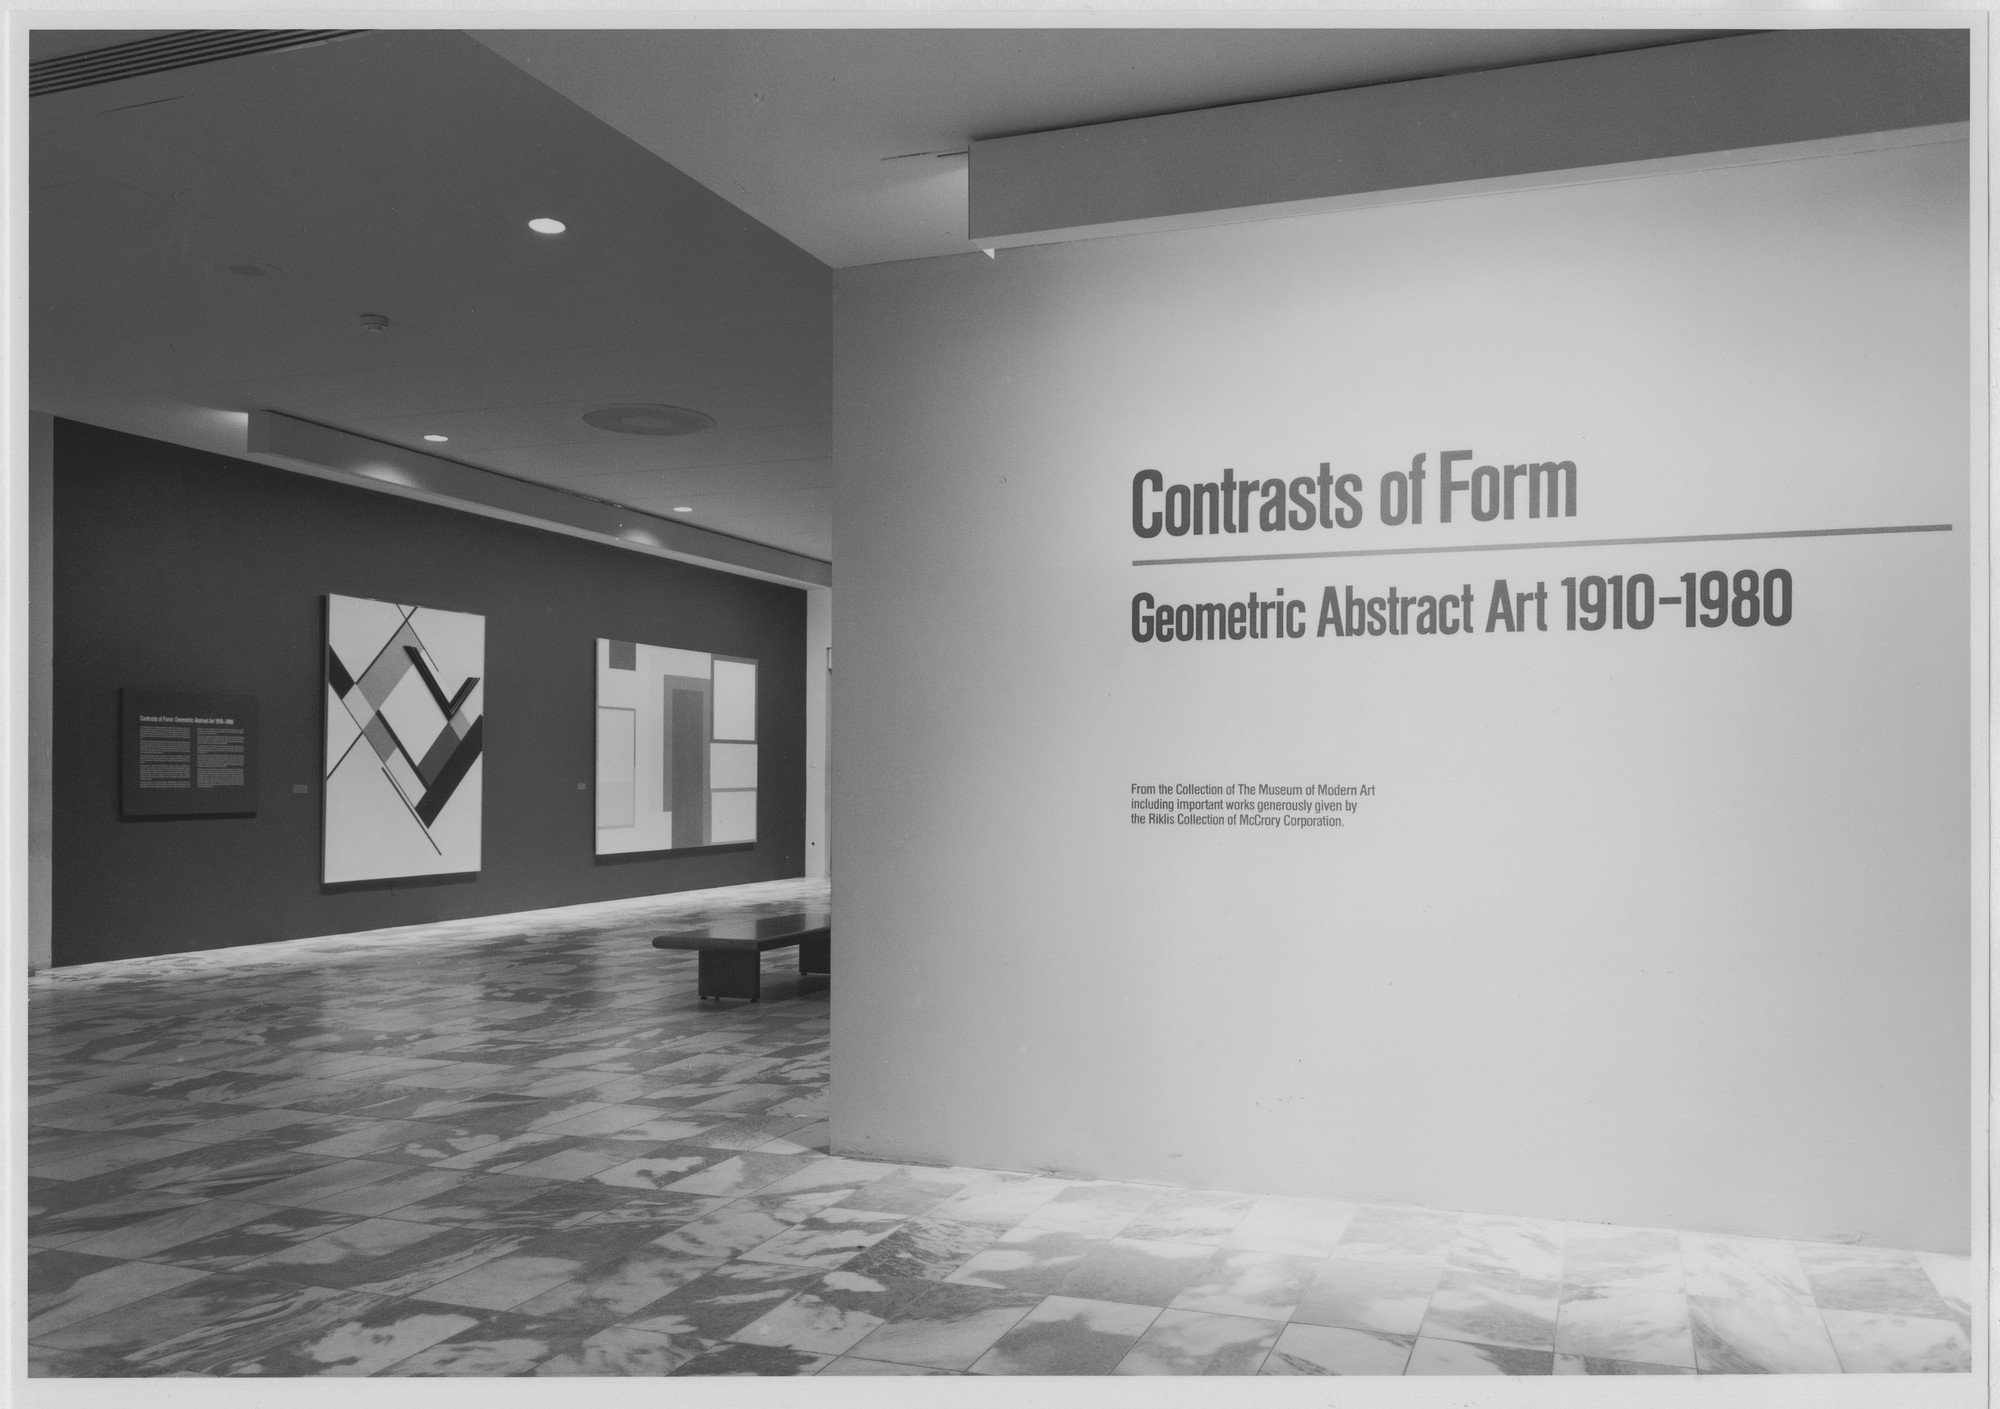 "Installation view of the exhibition, ""Contrasts of Form: Geometric Abstract Art 1910-1980"" October 2, 1985–January 7, 1986. Photographic Archive. The Museum of Modern Art Archives, New York. IN1407.1. Photograph by Katherine Keller."